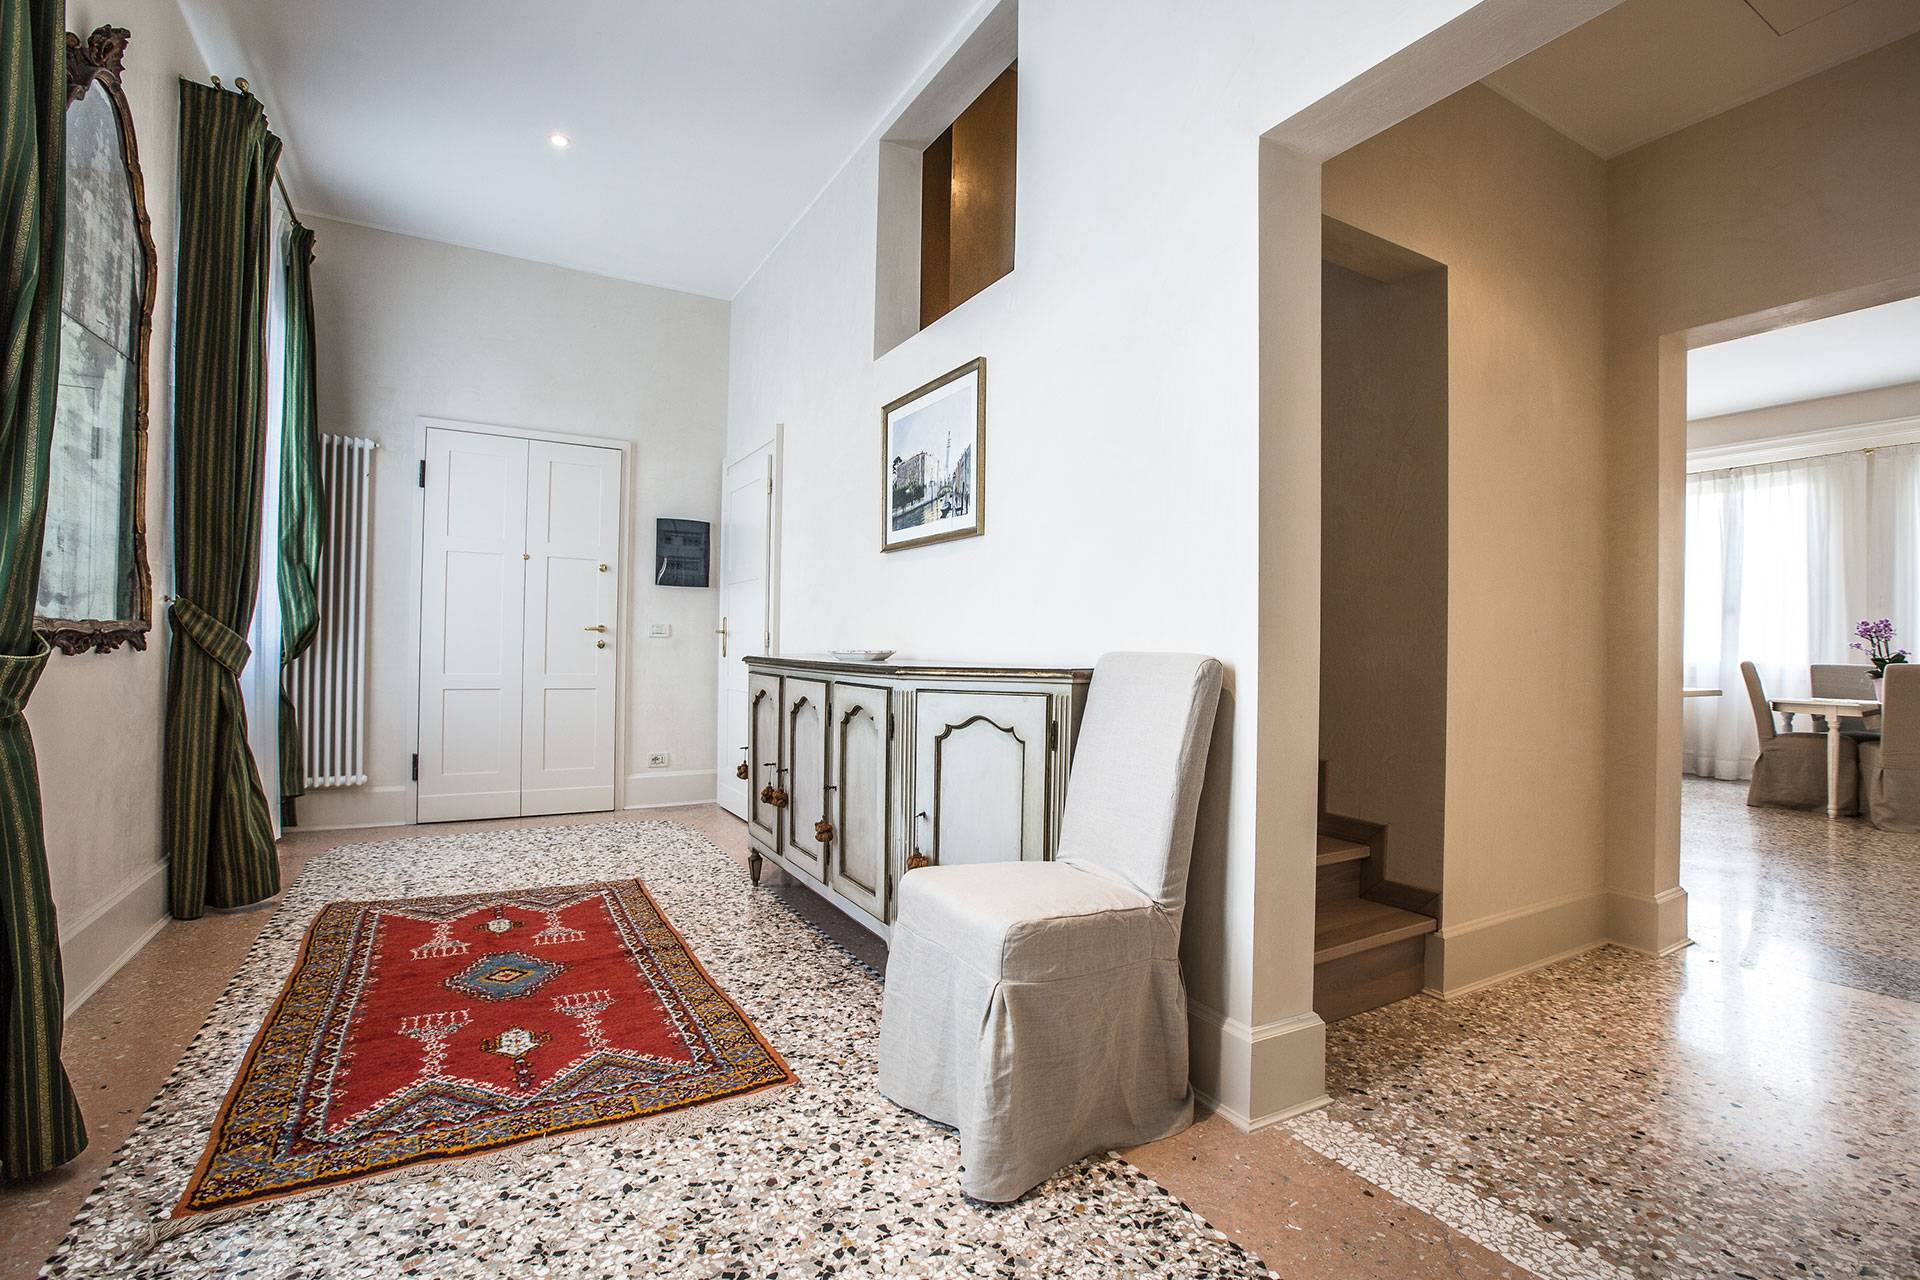 beautifully furnished entrance room